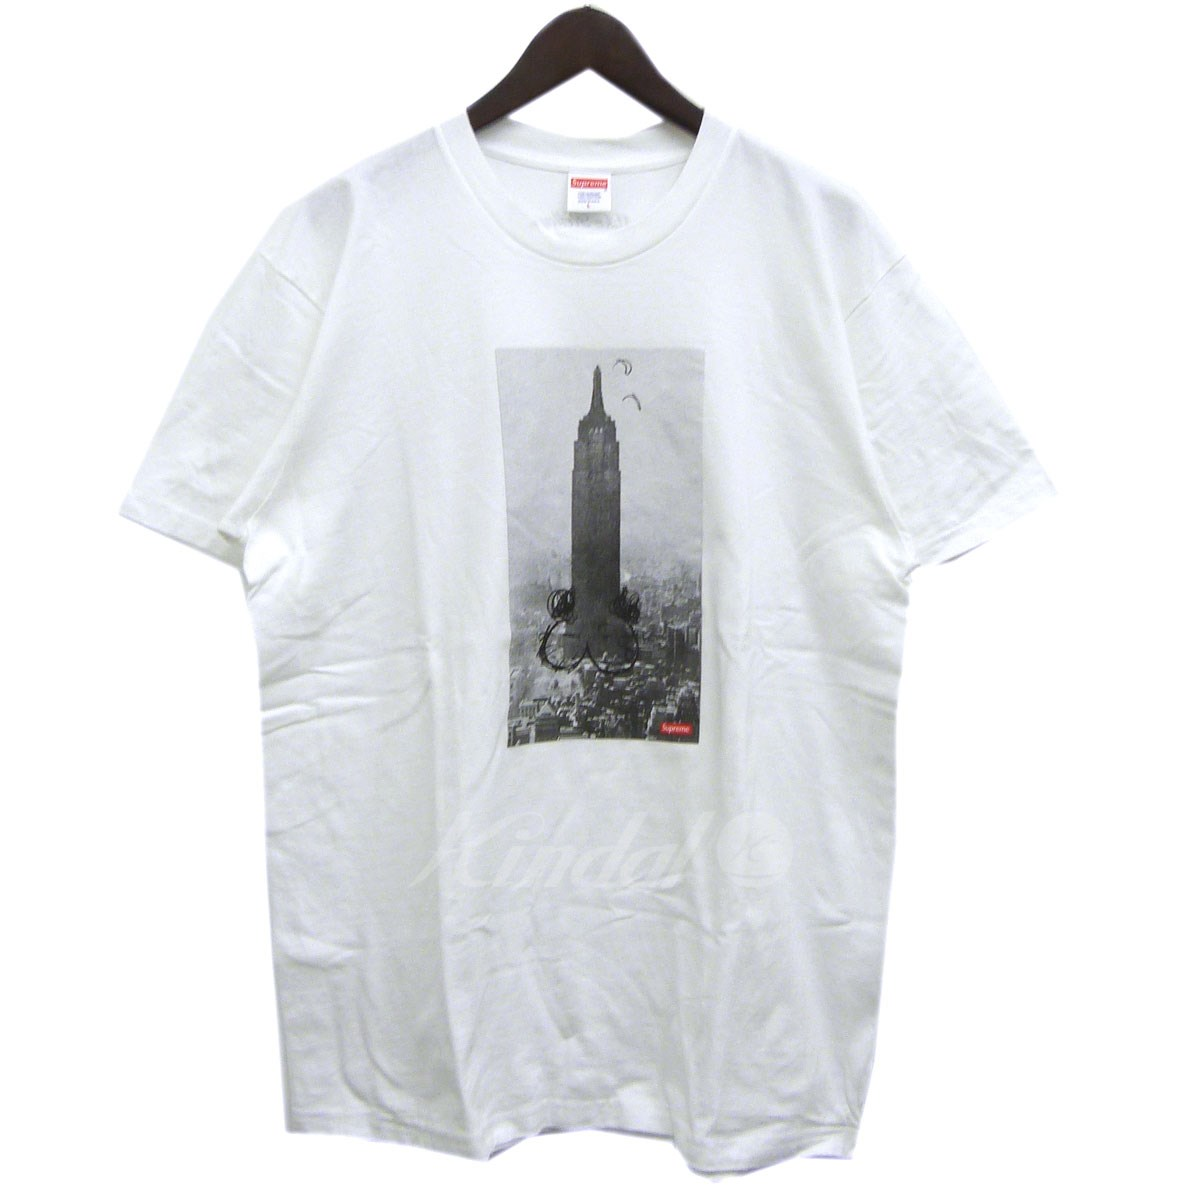 【中古】SUPREME×Mike Kelley 18AW「The Empire State Builing Tee」エンパイアステートビルTシャツ 【送料無料】 【118338】 【KIND1550】